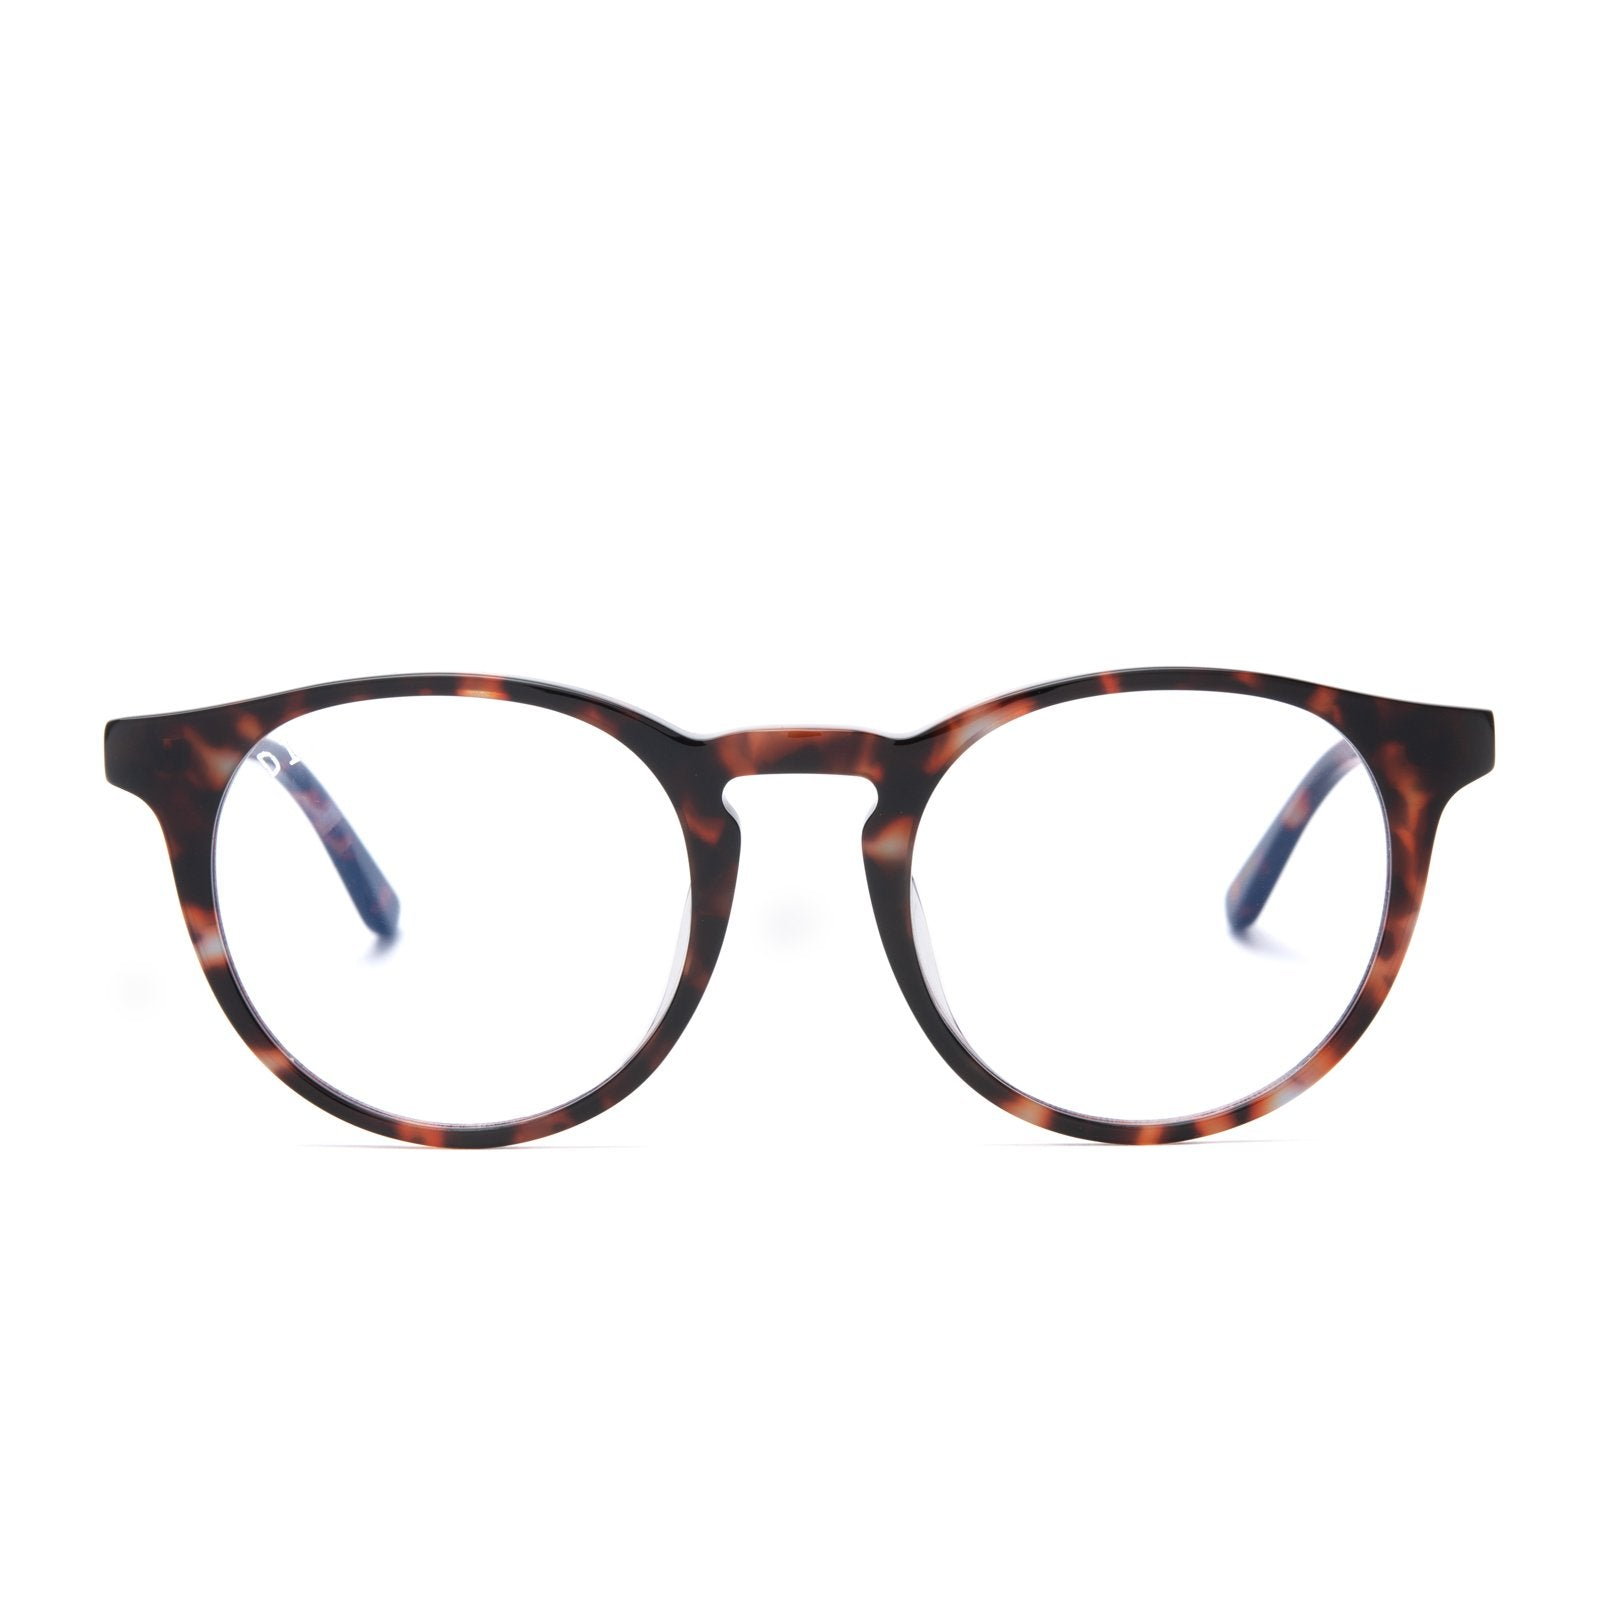 Sawyer eyeglasses with wine tortoise frames and prescription lens front view